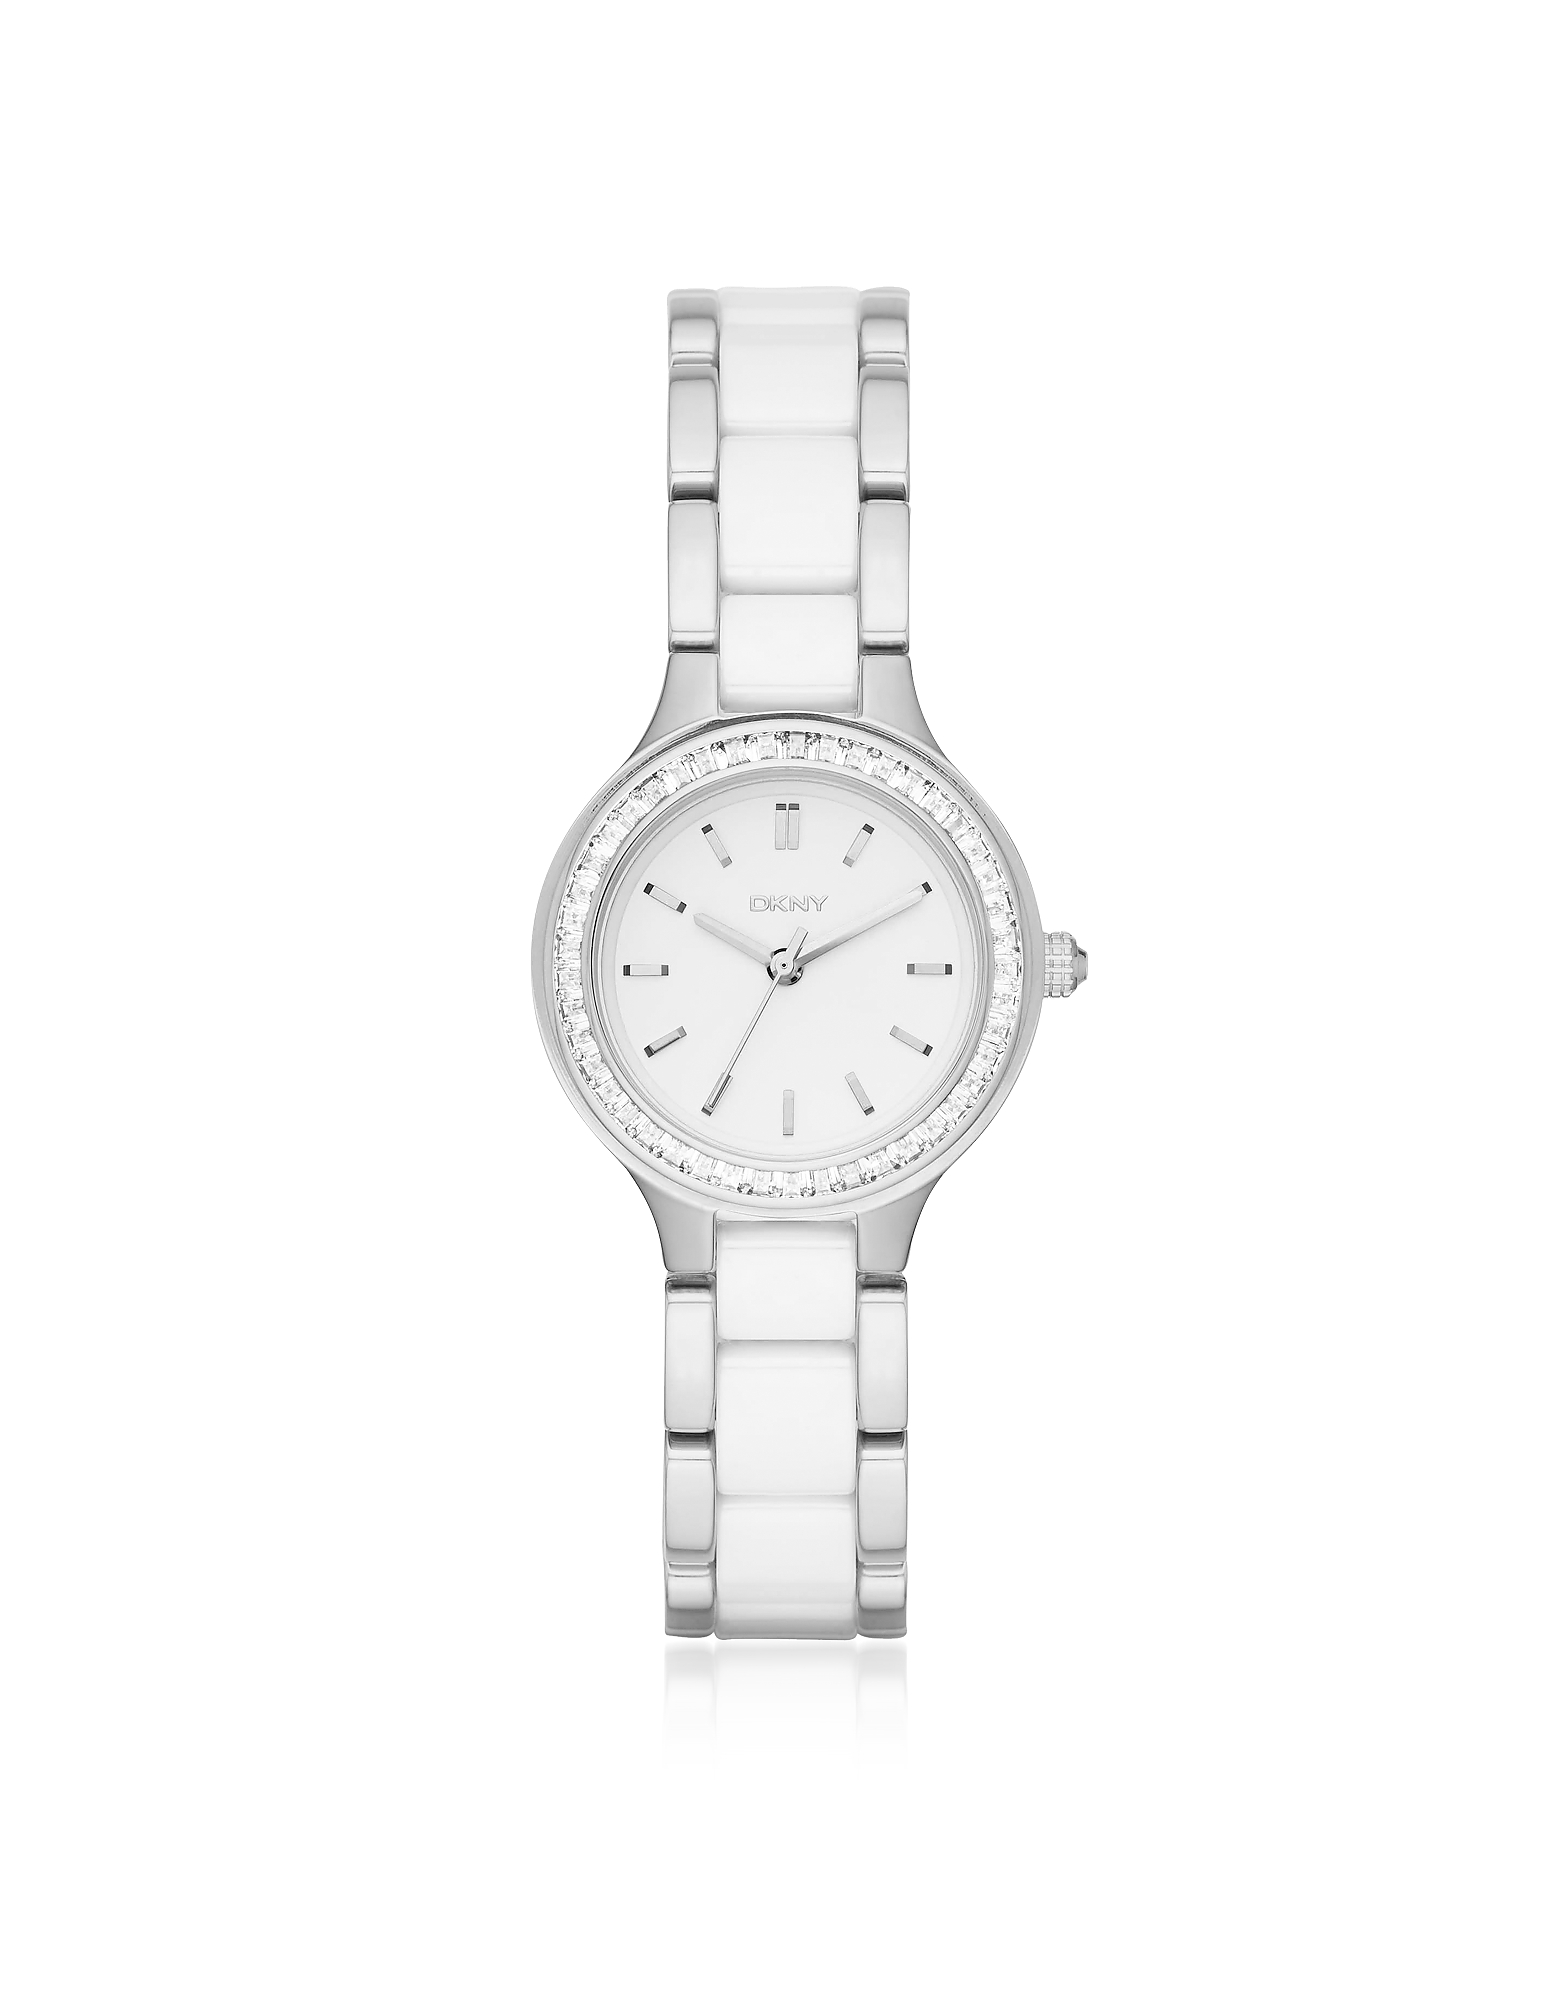 Chambers Silver and White Ceramic Women's Watch